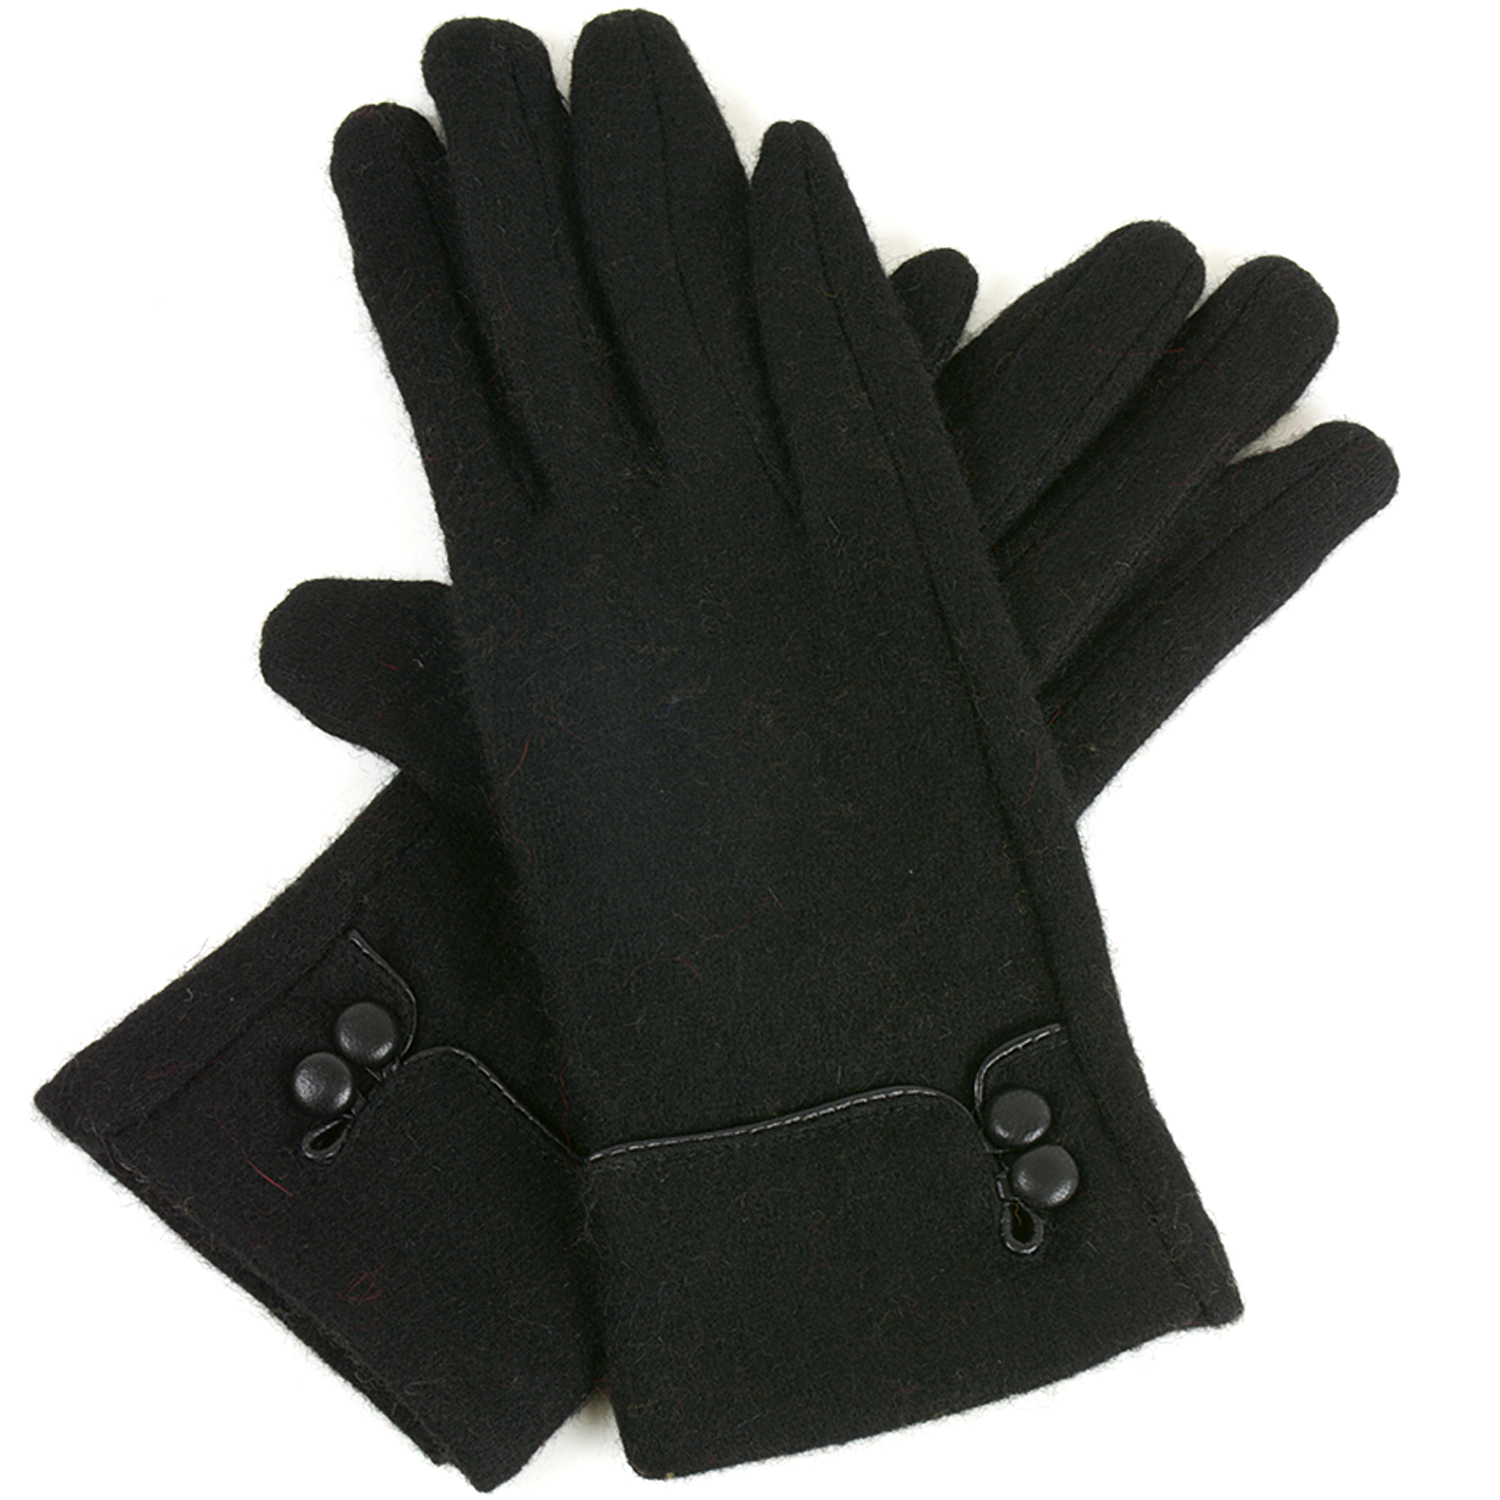 Alpine-Swiss-Womens-Wool-amp-Leather-Trim-Touch-Screen-Texting-Dress-Button-Gloves thumbnail 11